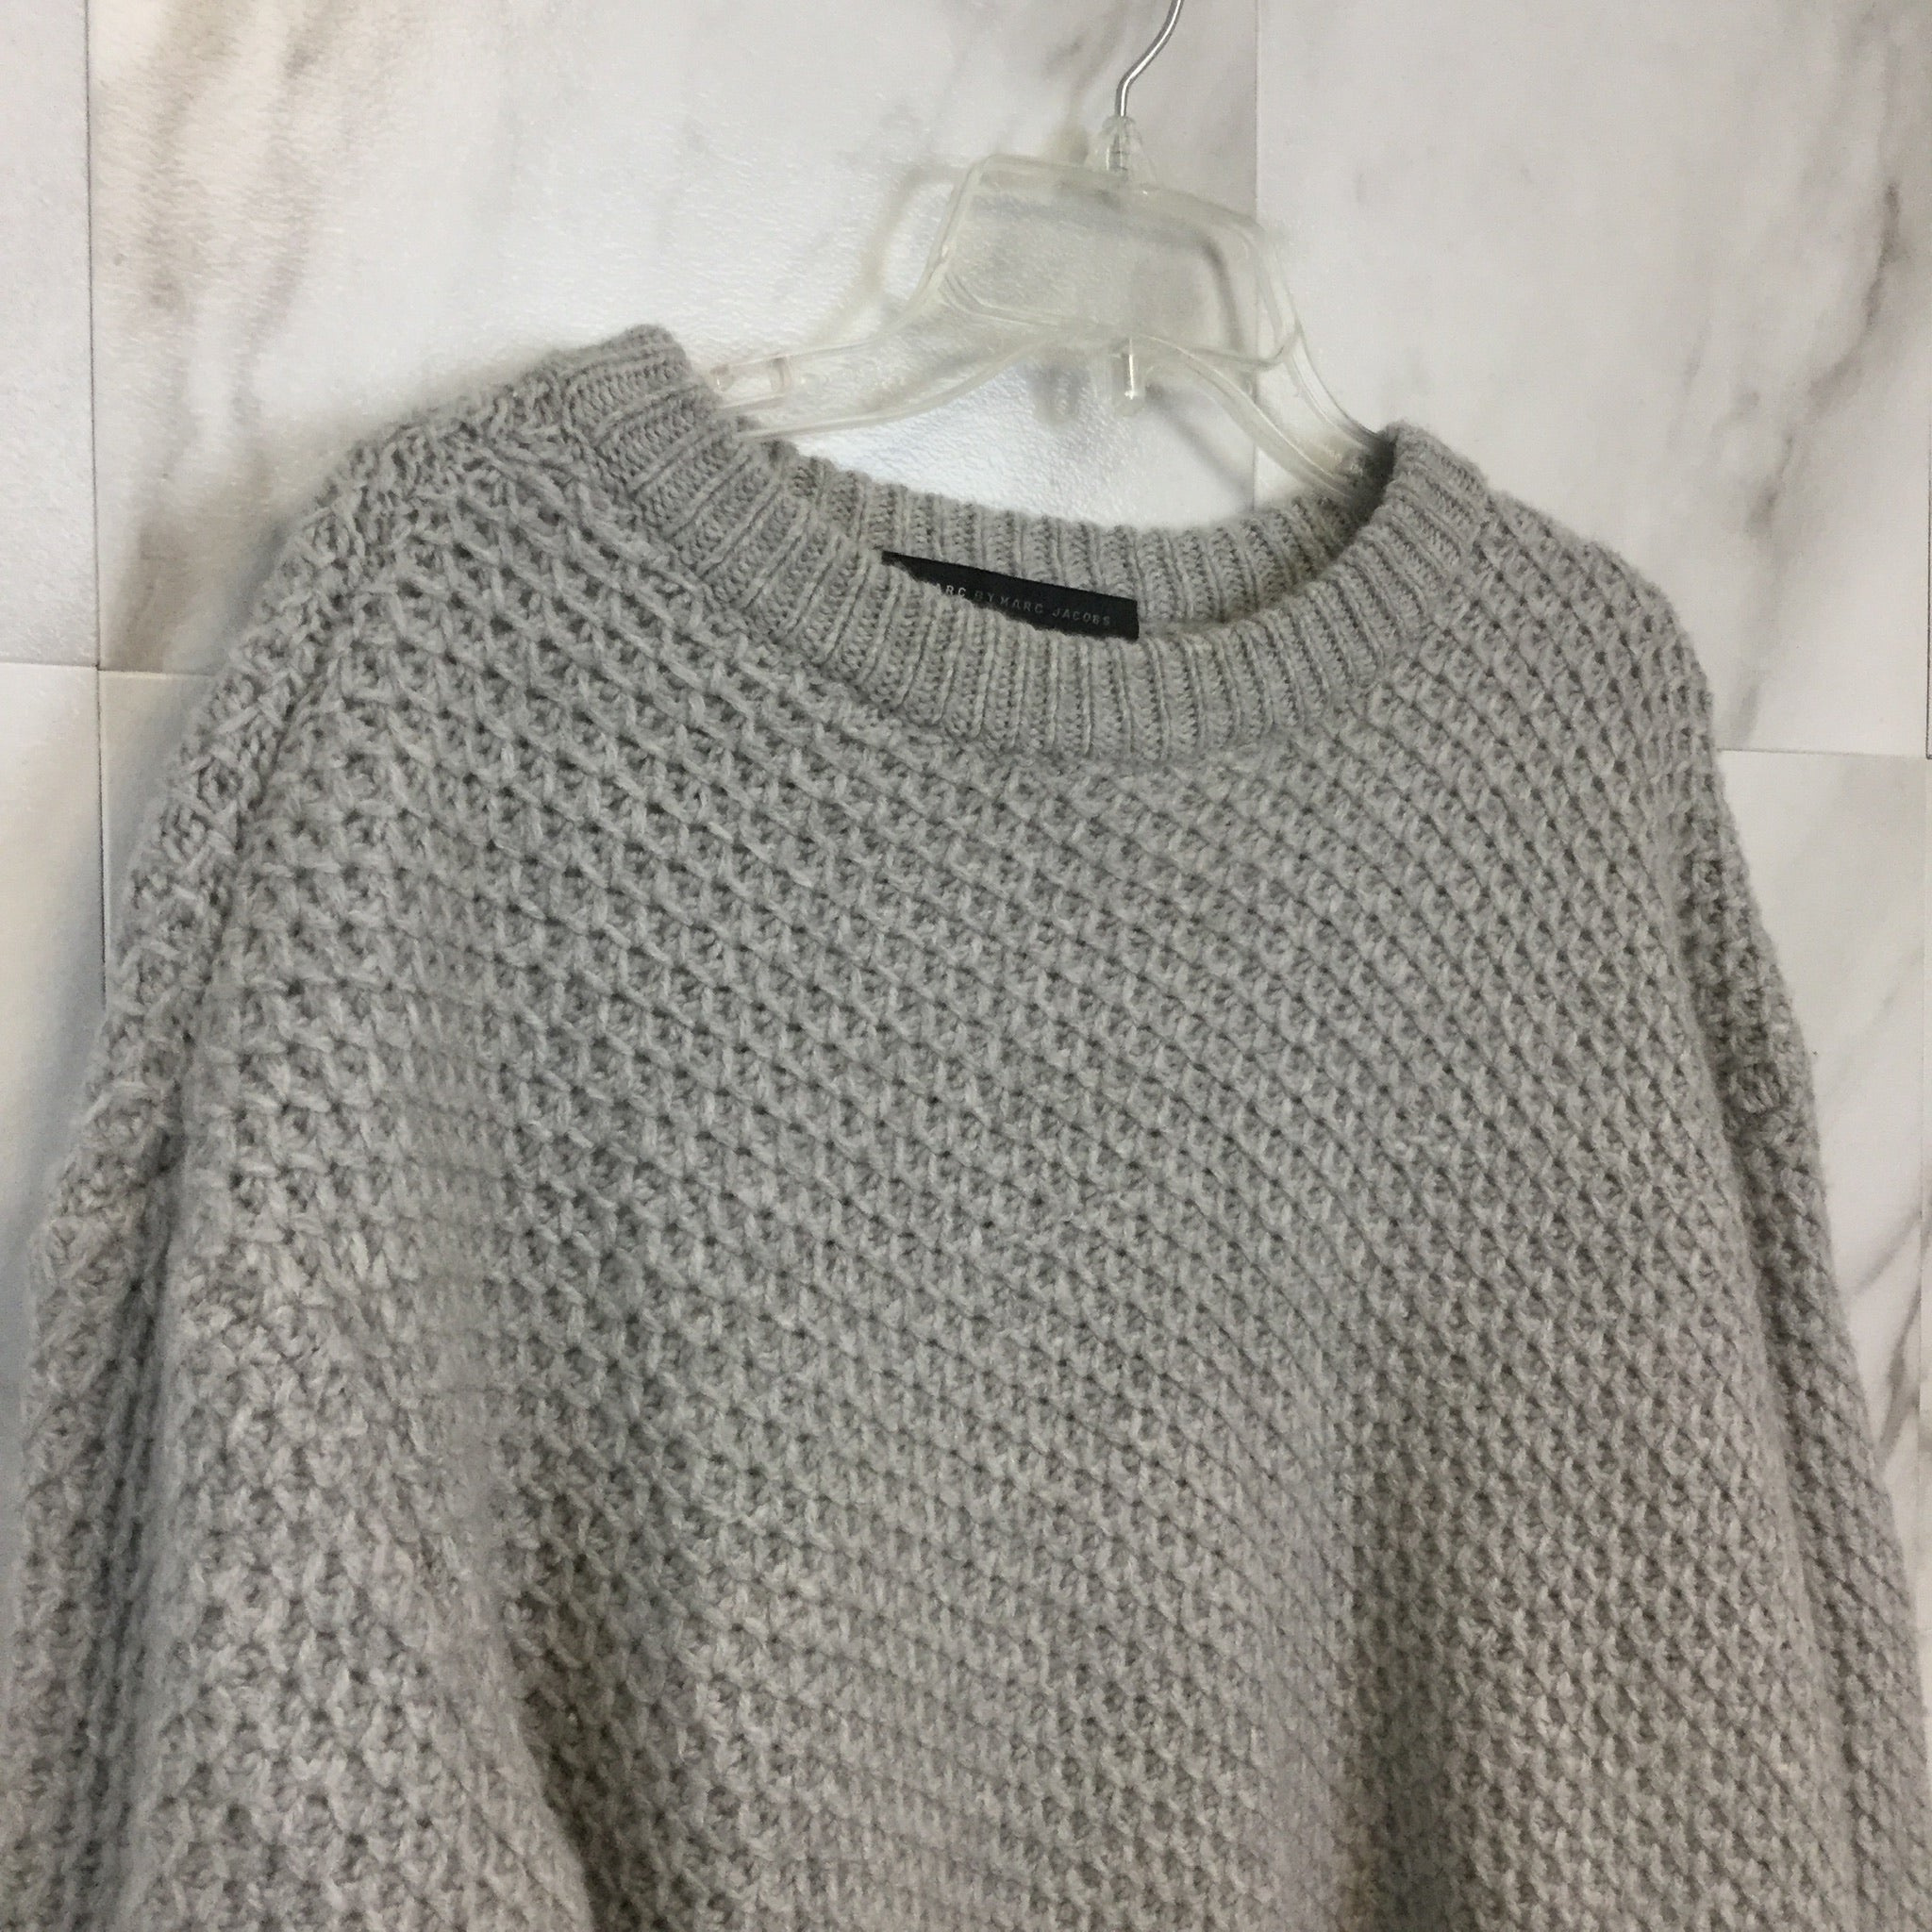 Marc by Marc Jacobs Nora Sweater - Size M